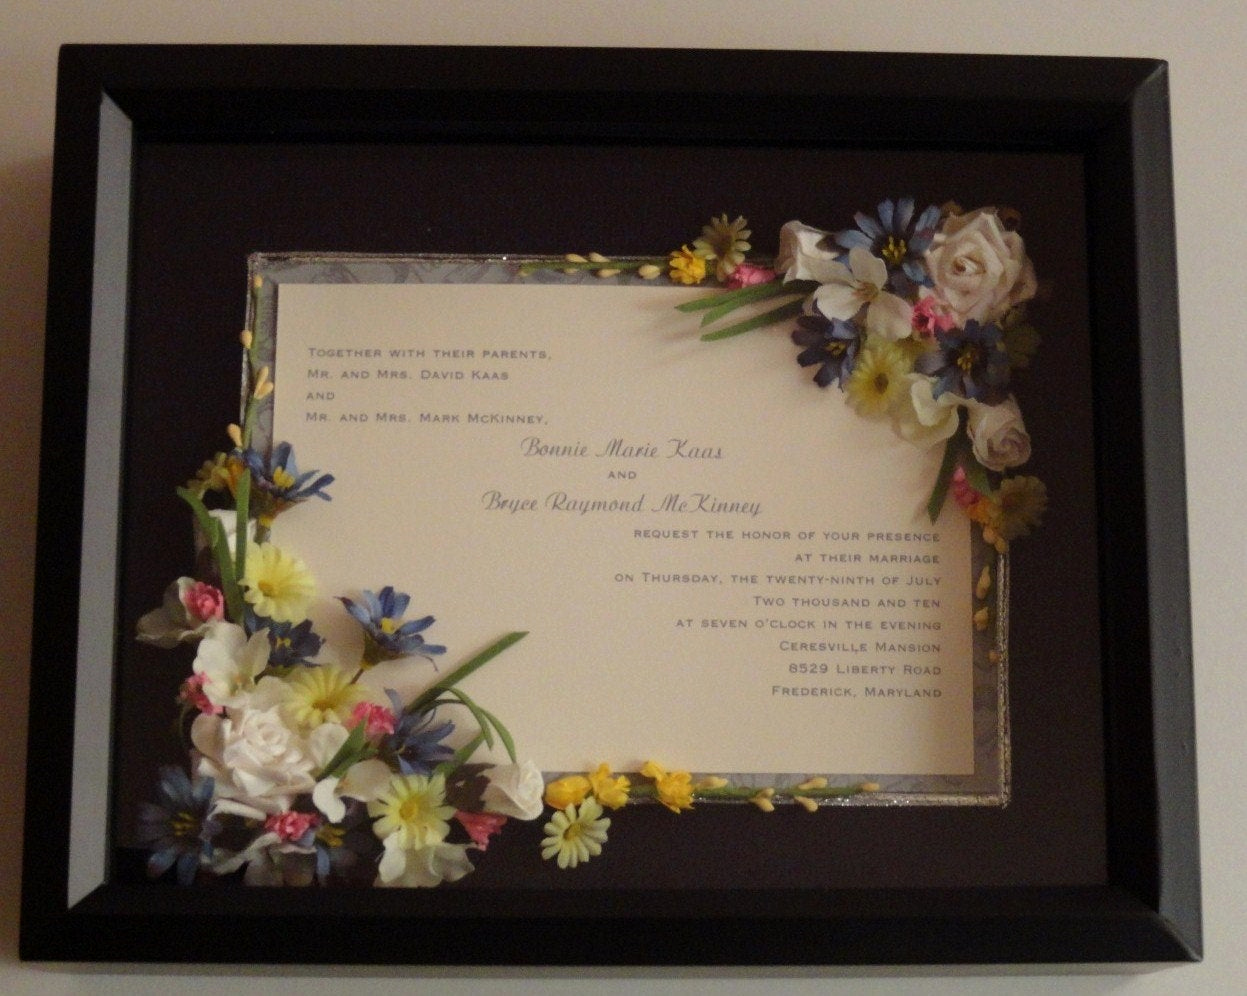 Wedding Invitation Shadow Box Luxury Items Similar to Single Page Wedding Invitation Shadow Box